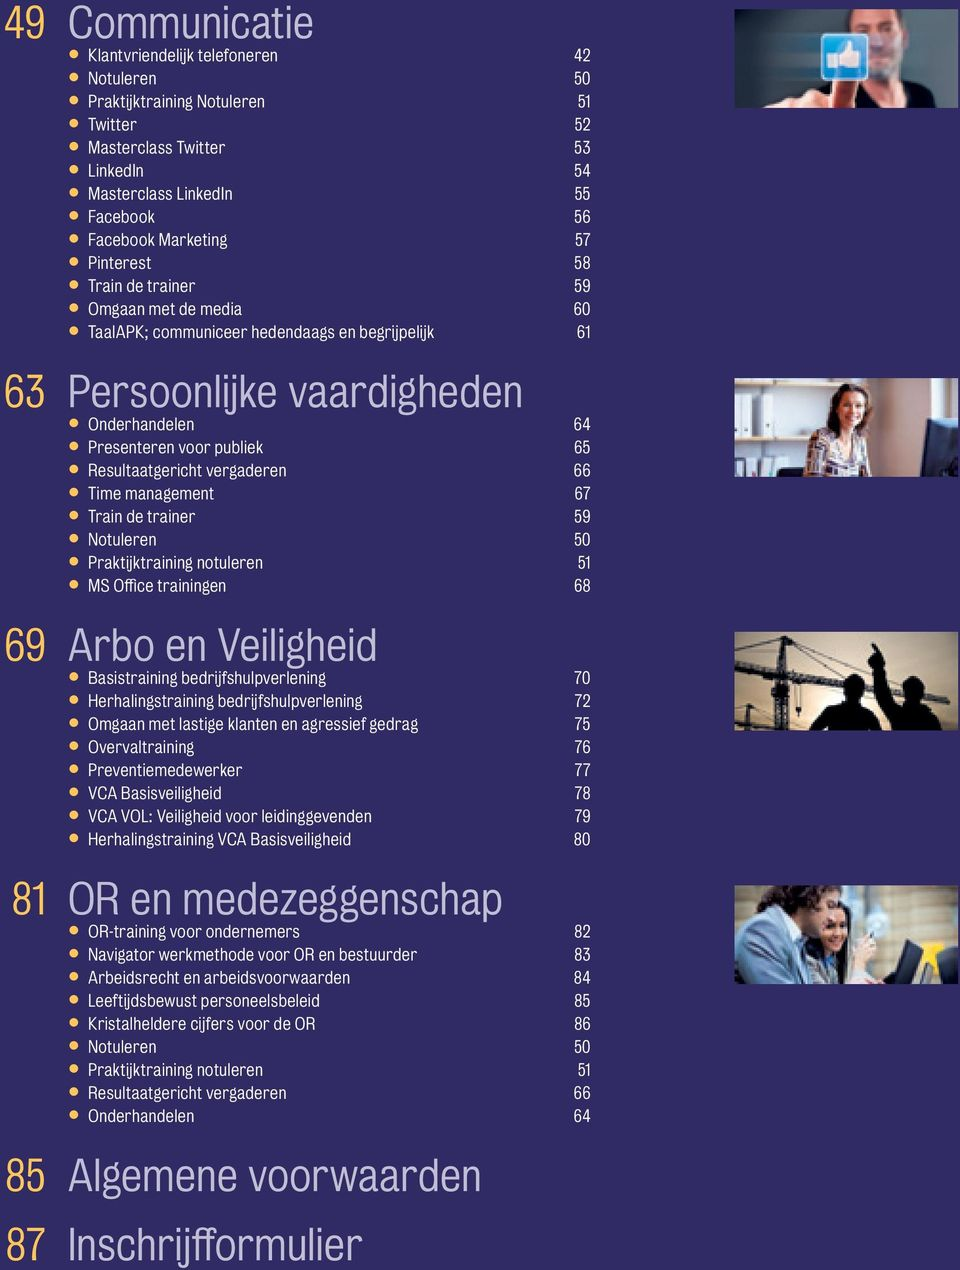 vergaderen 66 Time management 67 Train de trainer 59 Notuleren 50 Praktijktraining notuleren 51 MS Office trainingen 68 69 Arbo en Veiligheid Basistraining bedrijfshulpverlening 70 Herhalingstraining